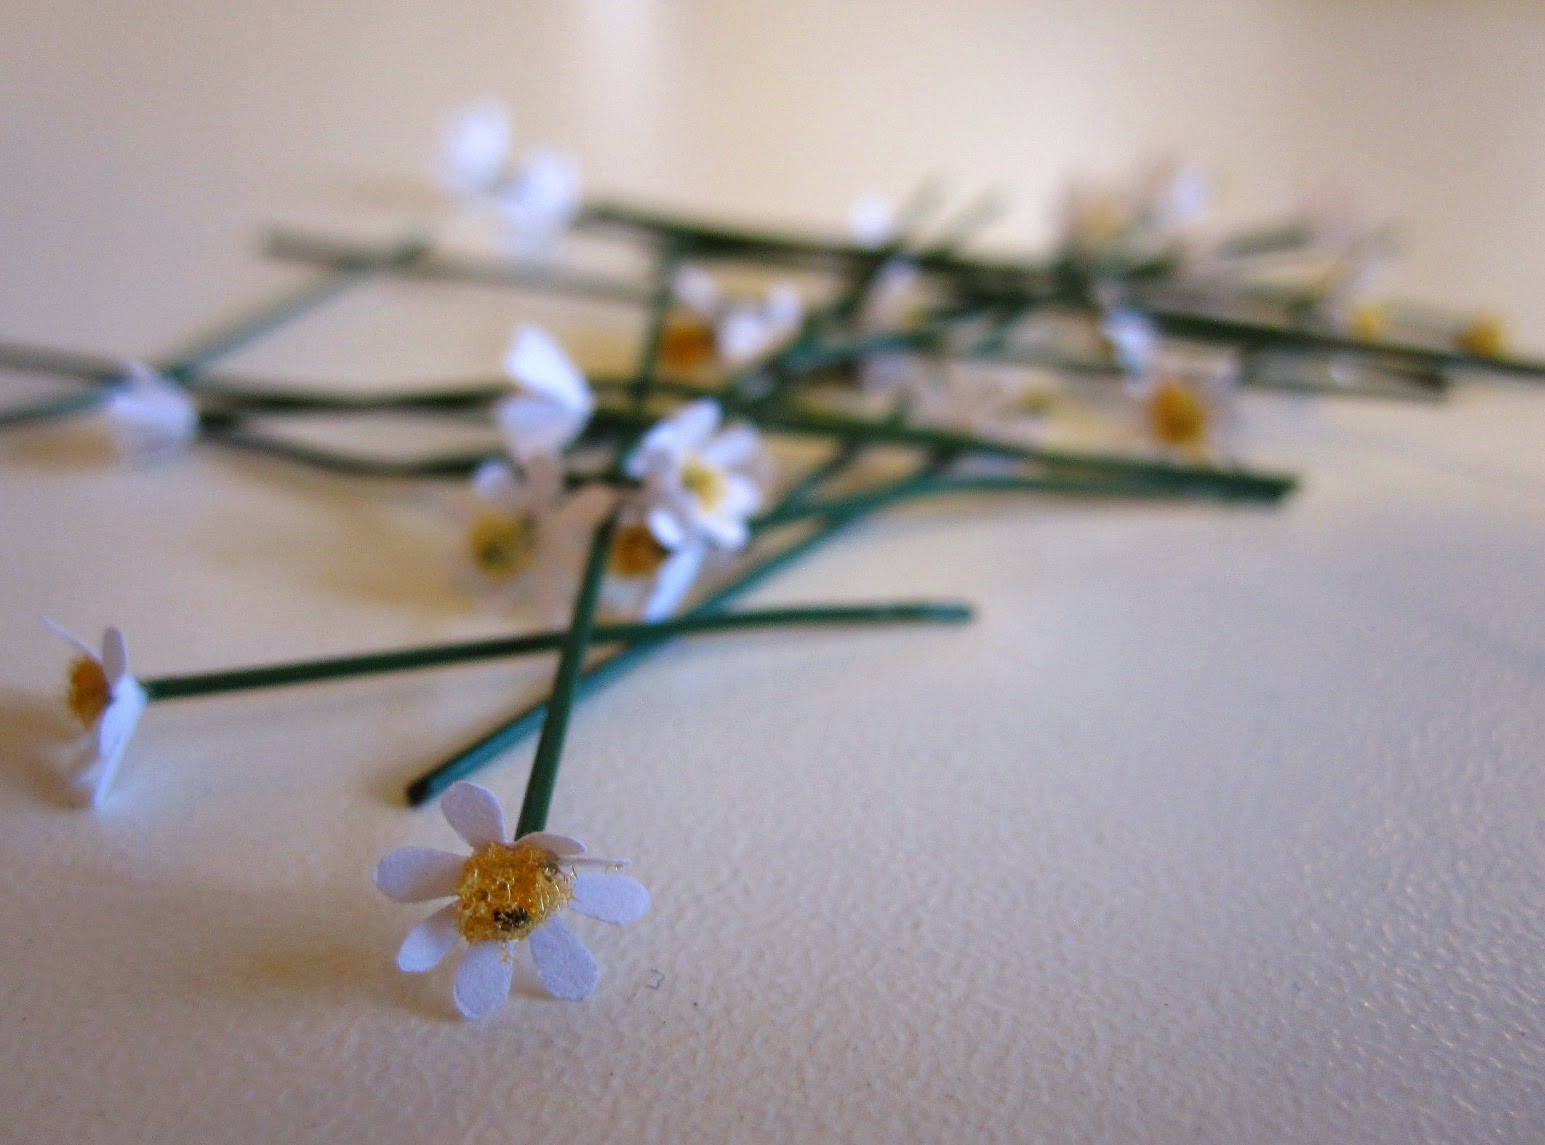 Twenty scattered hand-made miniature daisy flowers stems.